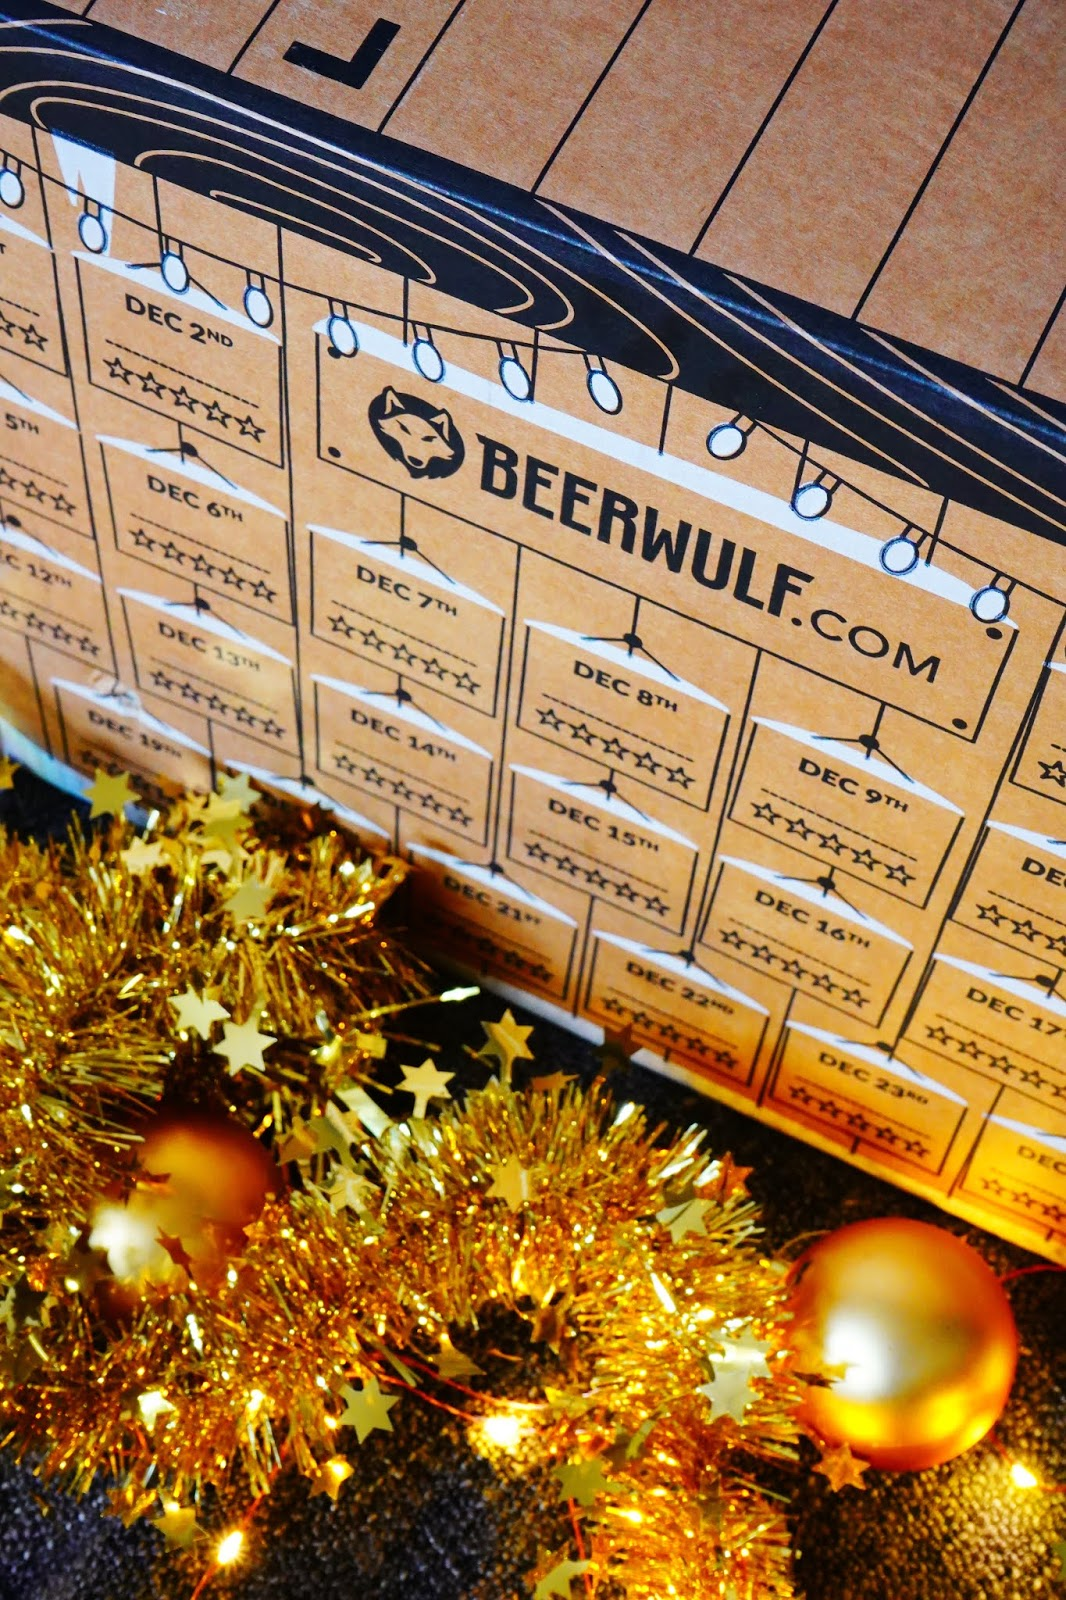 Christmas Gifts: Beerwulf Advent Calendar